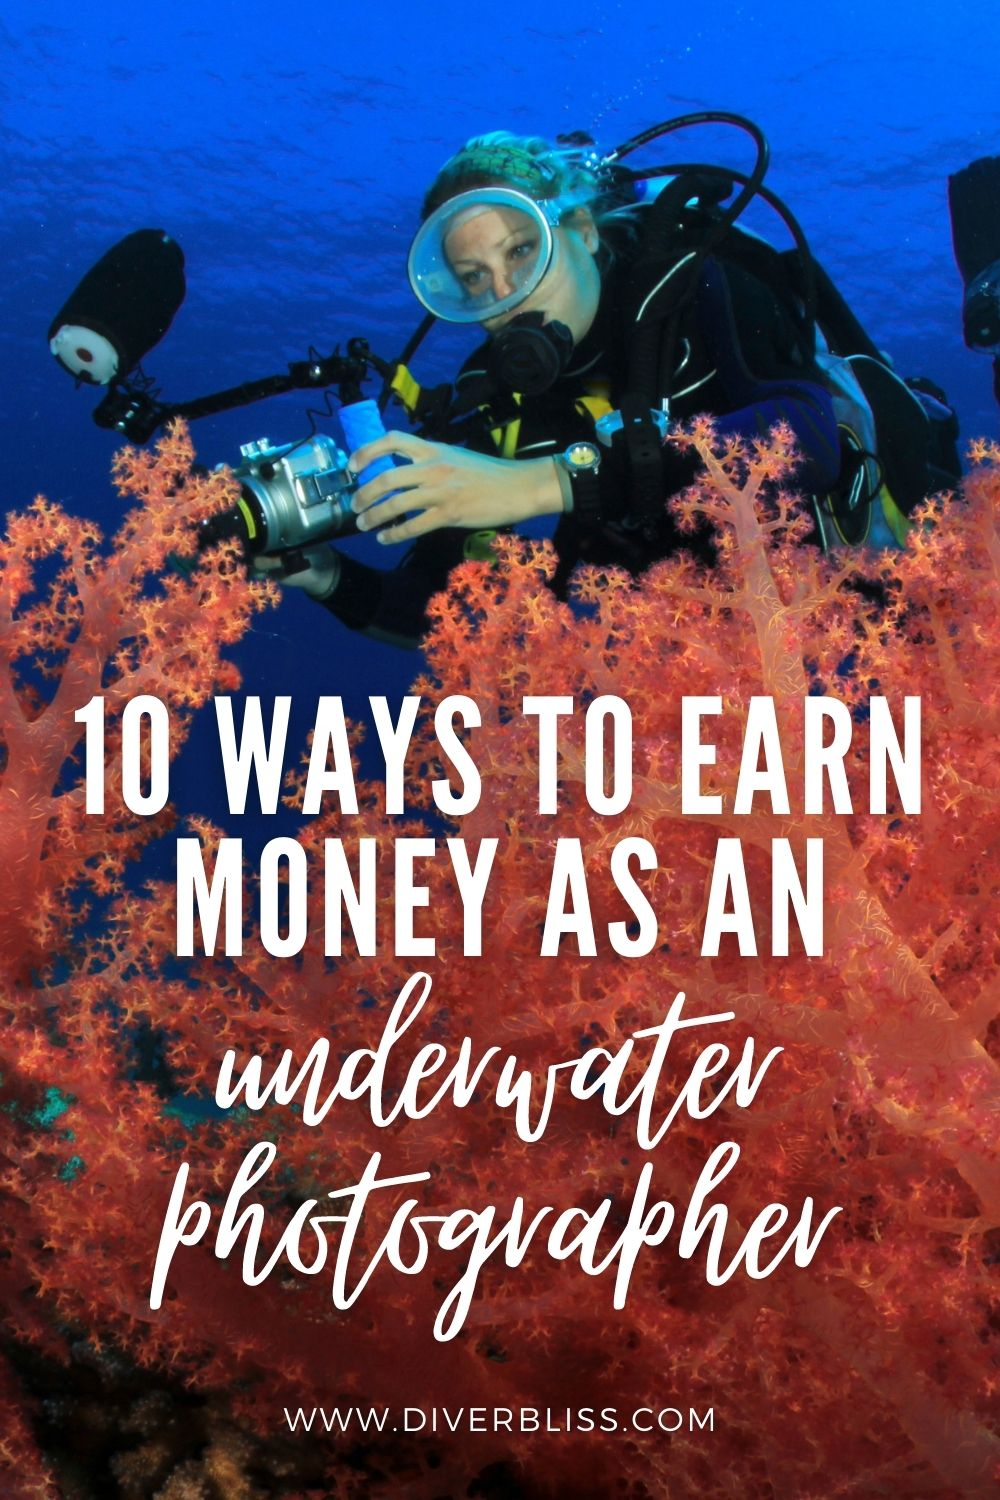 10 ways to earn money as an underwater photographer